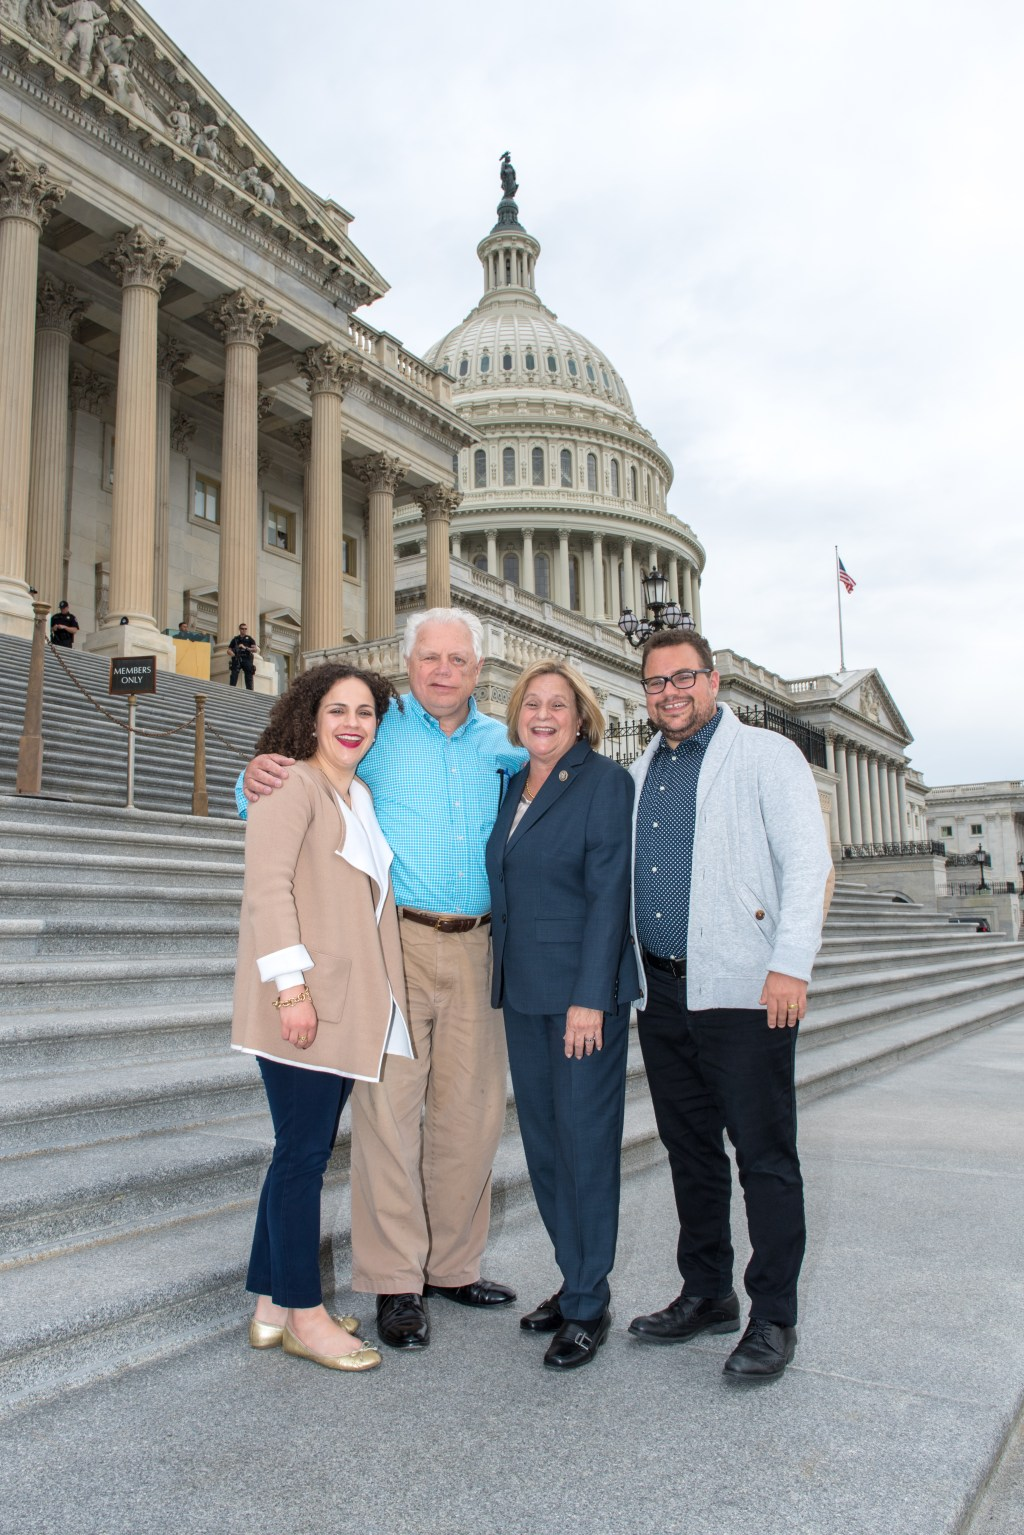 Former Rep. Ileana Ros-Lehtinen with her husband, Dexter, and their kids, Patty and Rigo in D.C. last year. (Photo courtesy of Rodrigo Heng-Lehtinen)